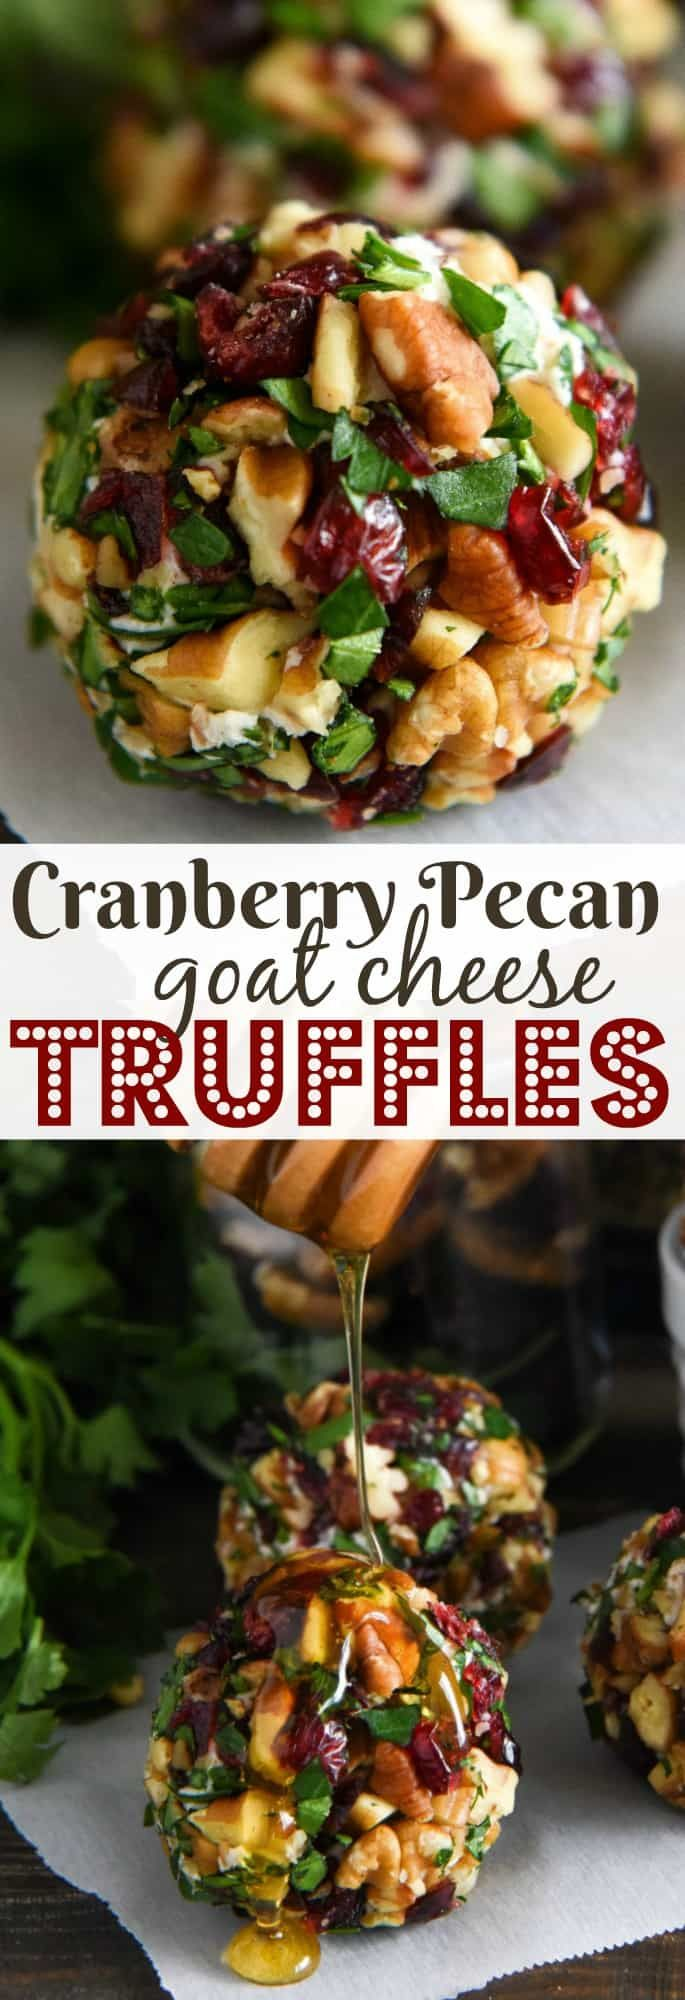 Cranberry Pecan Goat Cheese Truffles: these festive mini cheese balls only take 15 minutes and are loaded with creamy goat cheese, cranberries and crunchy Fisher Nuts pecans! #ThinkFisher